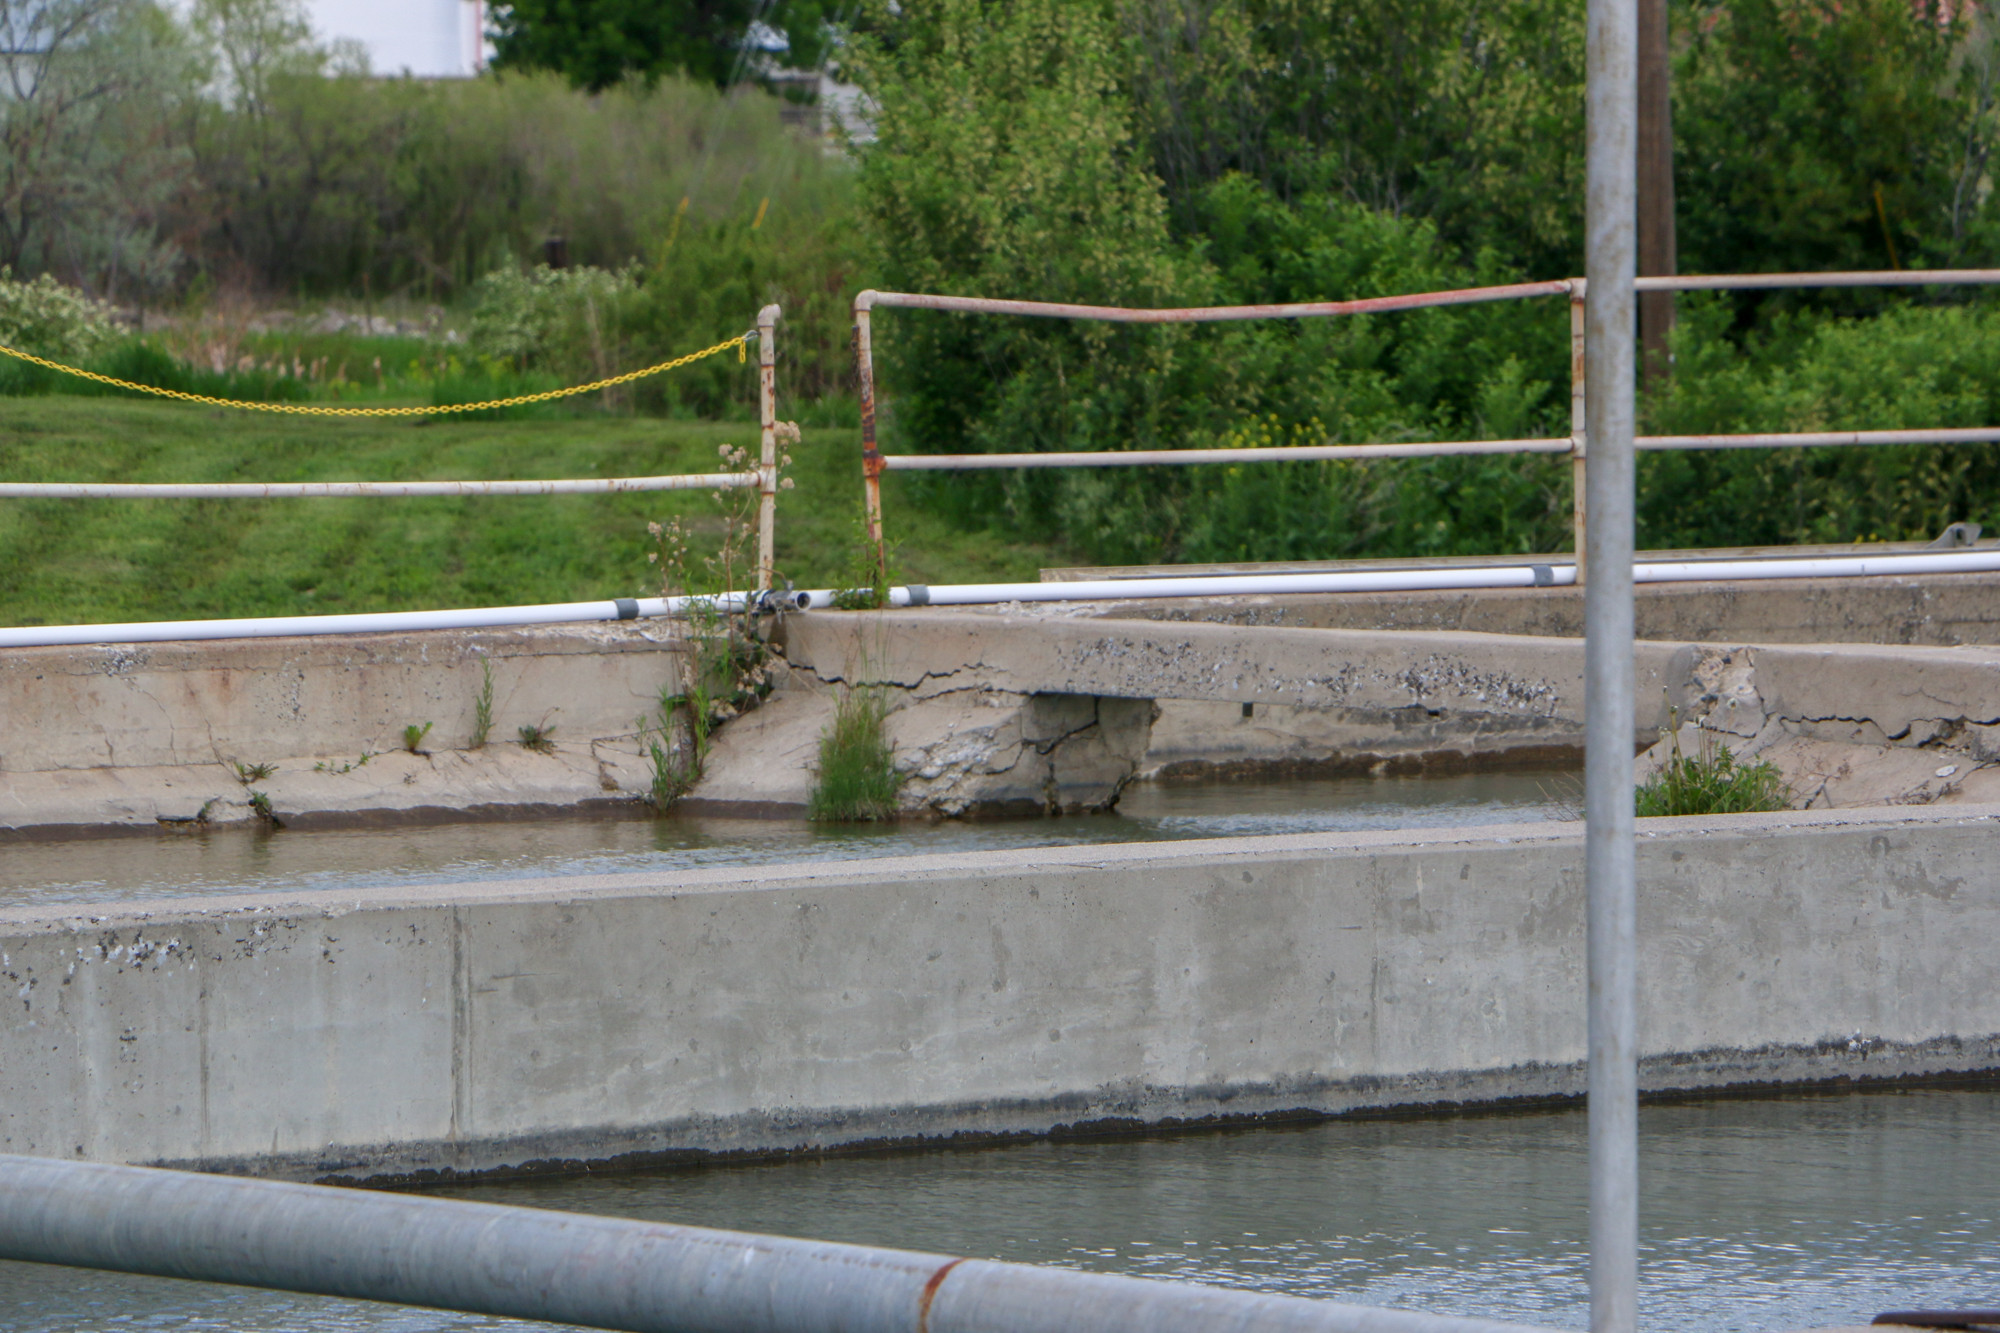 Some of the erosion and damage of the old sediment basins at the City Water Treatment Plant.